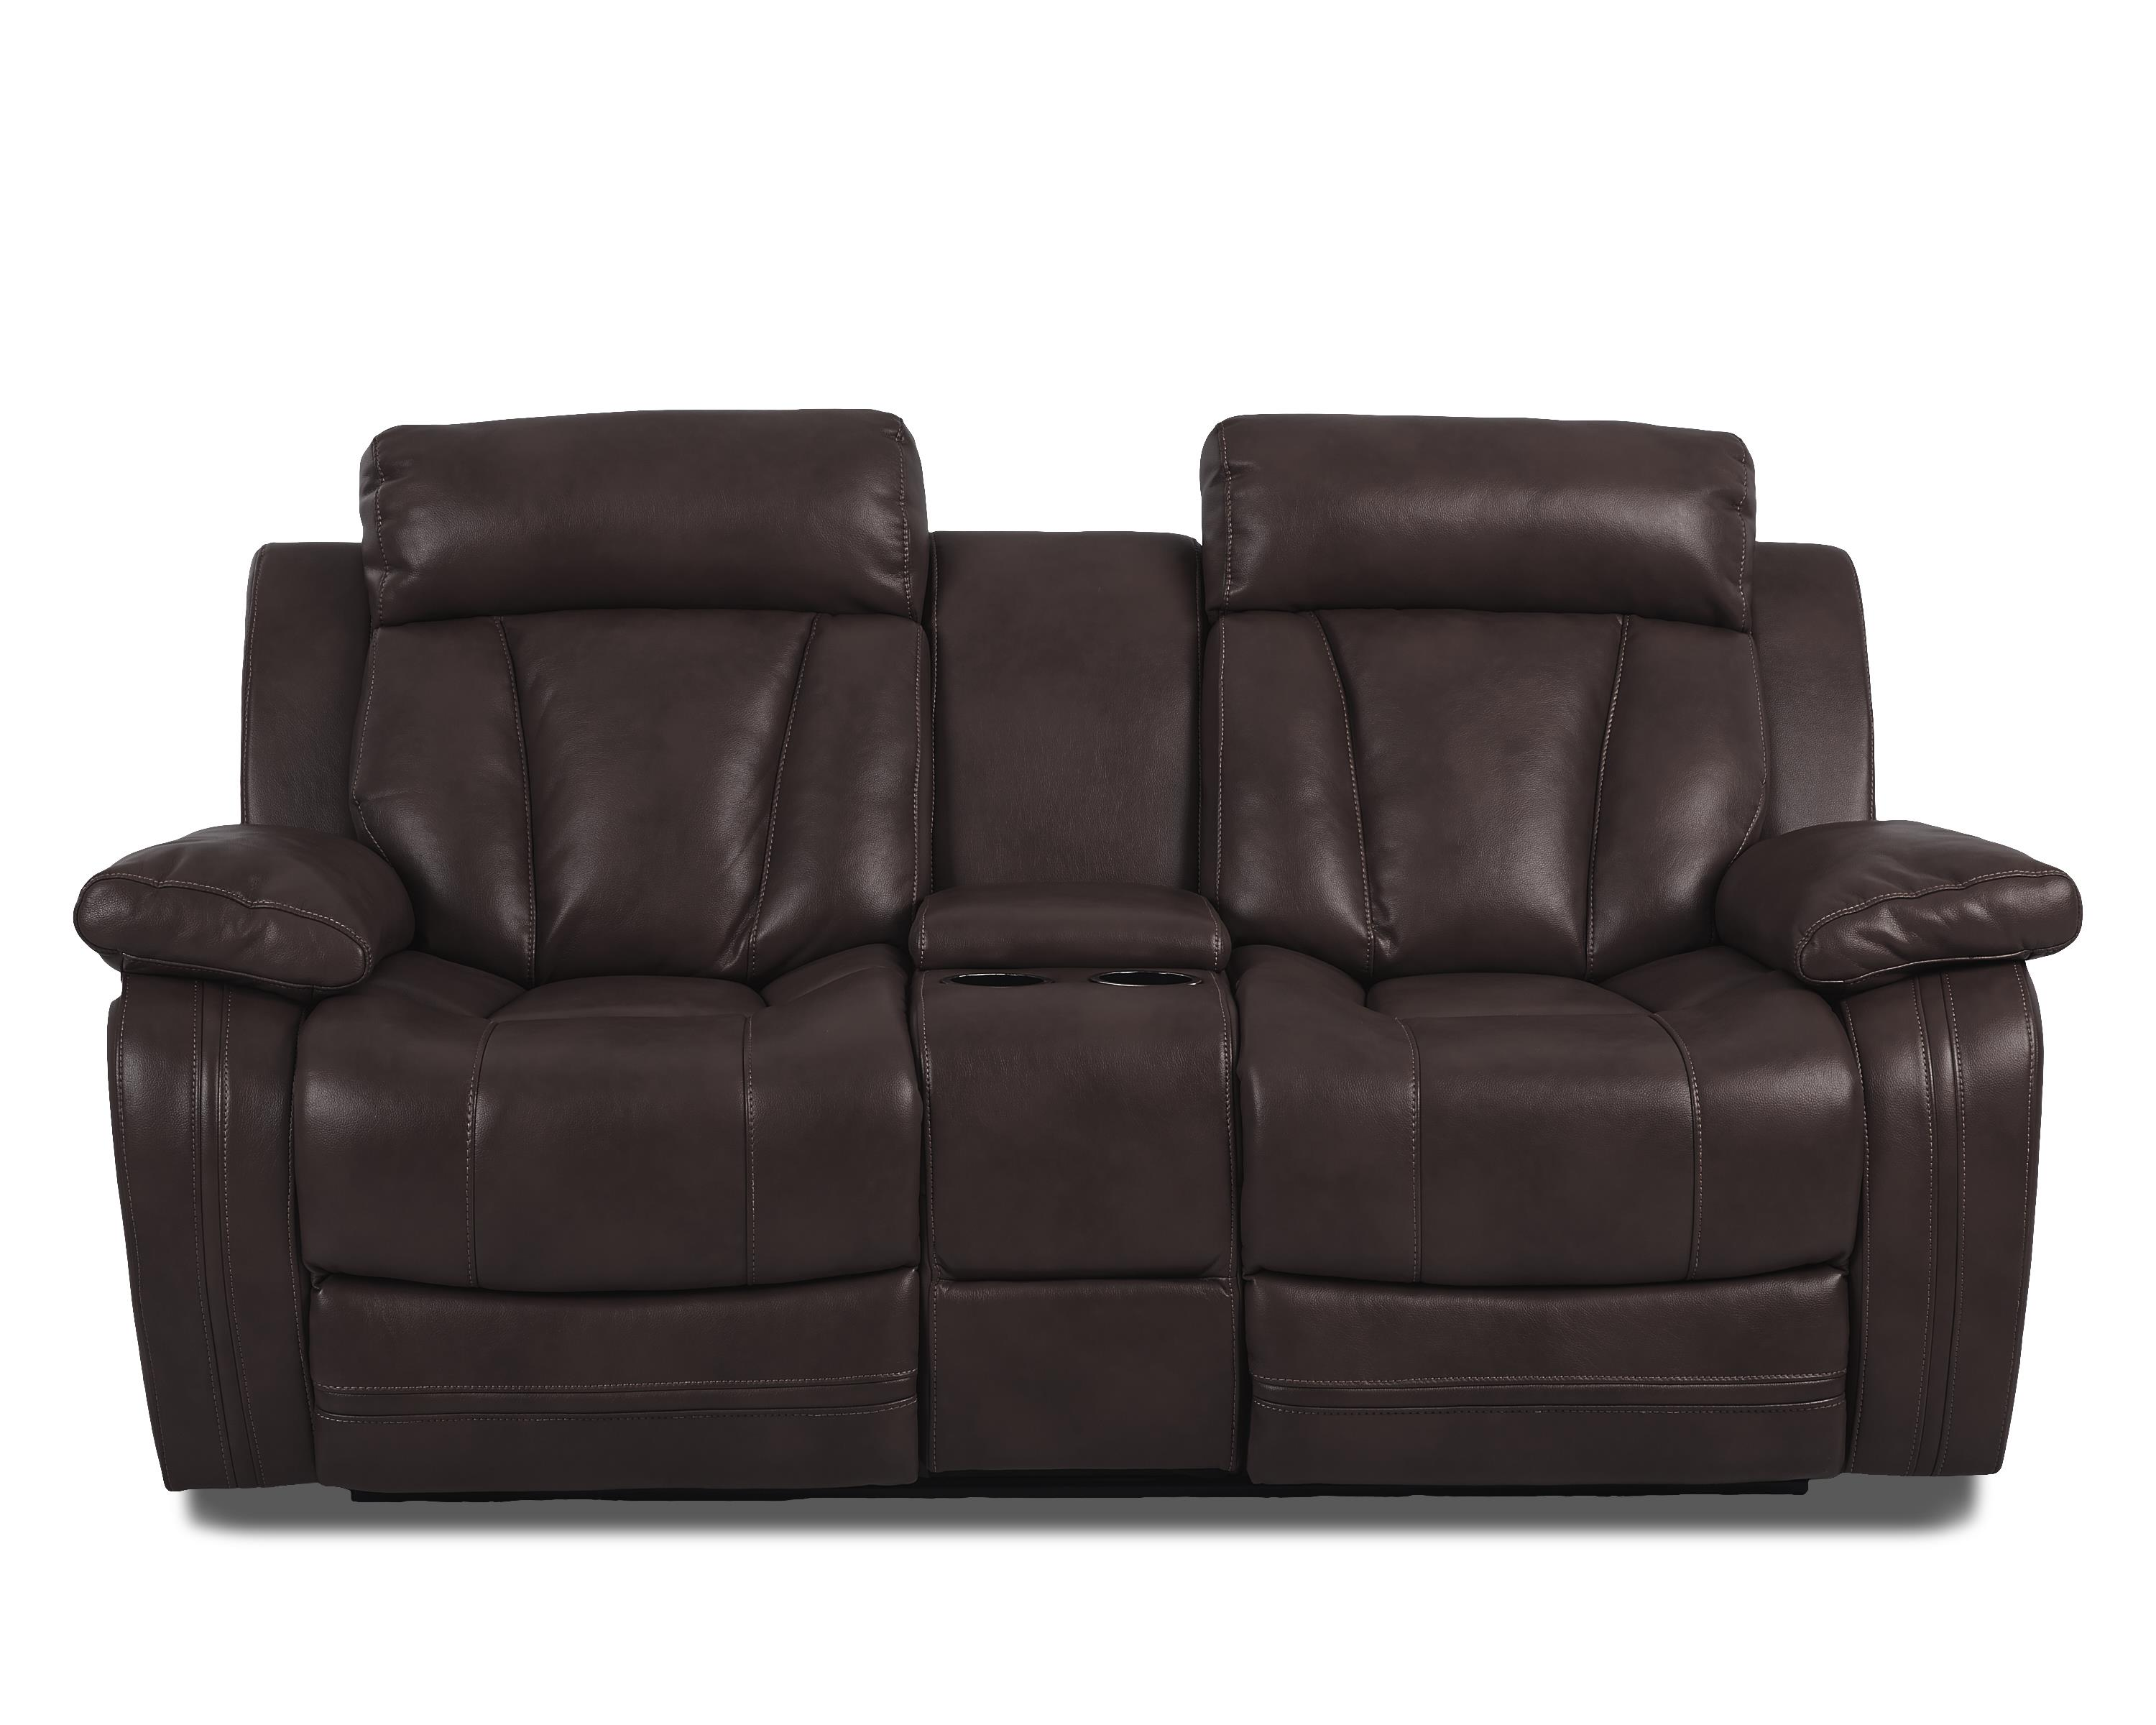 Atticus-US Console Reclining Loveseat by Klaussner International at Fine Home Furnishings